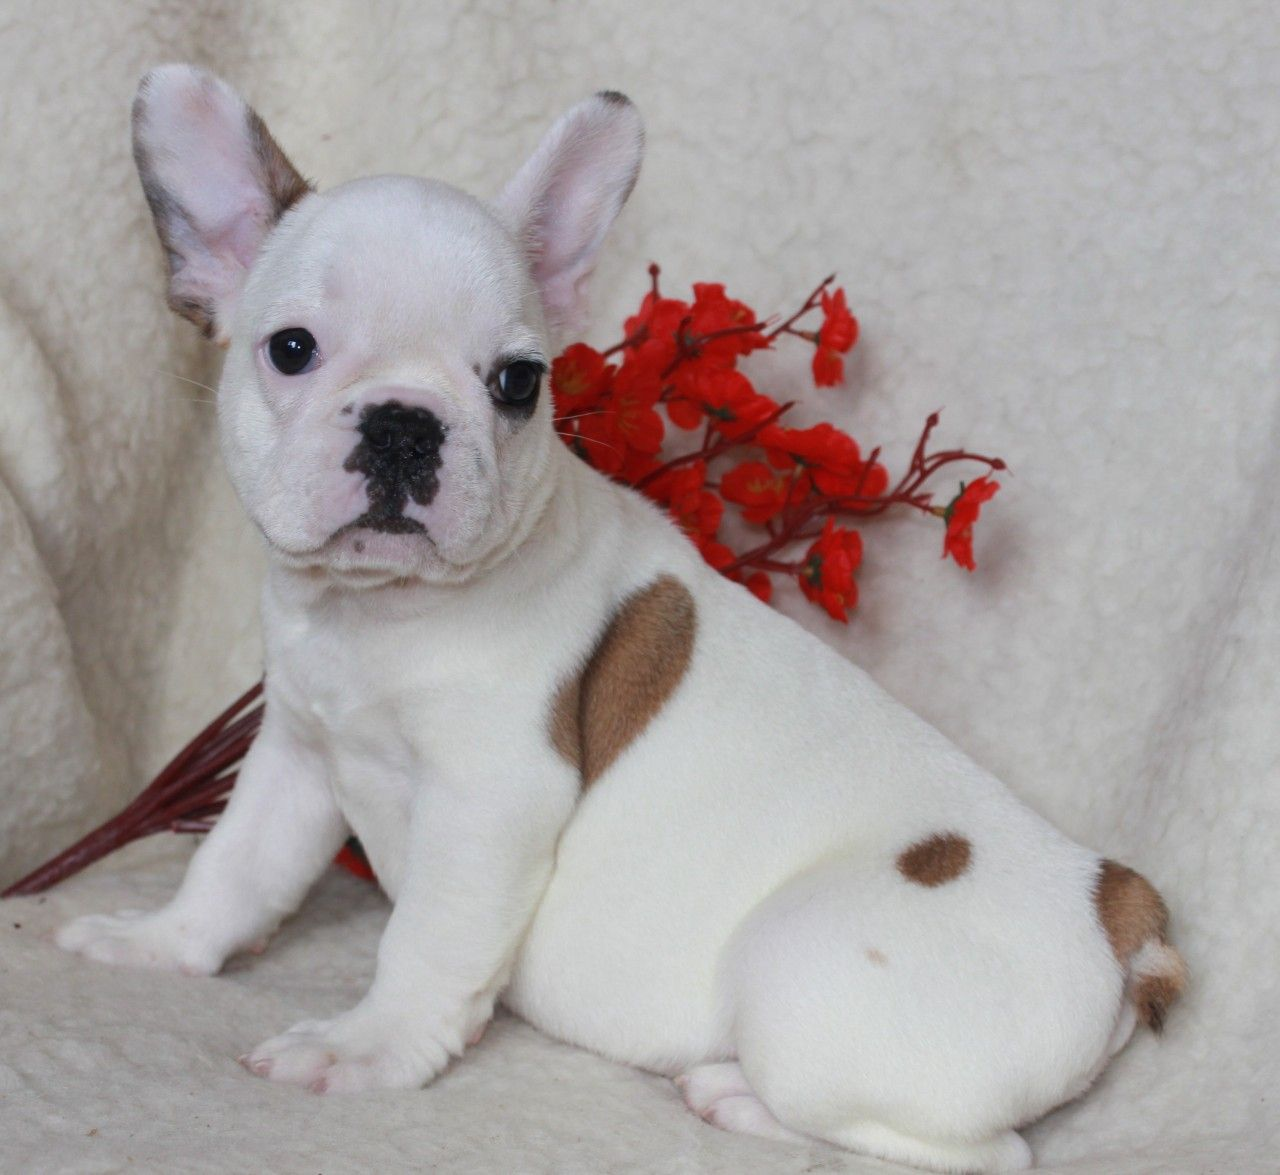 Luna female puppy French Bulldogs for sale in Brooklyn